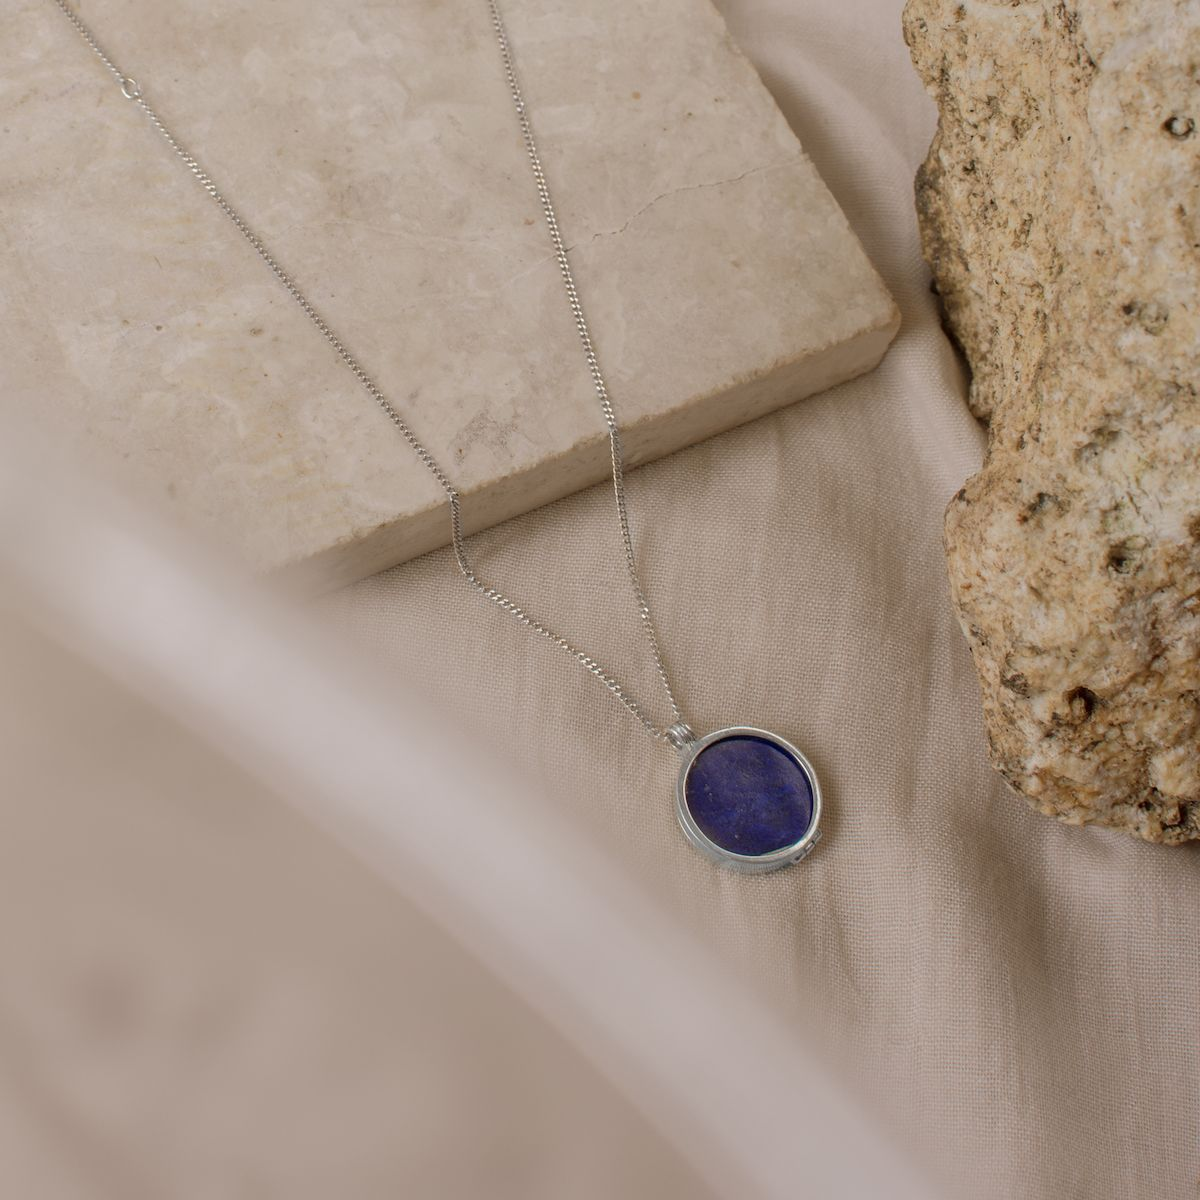 Midnight Necklace – Lapis Lazuli Gemstone - digital lockets by evermée